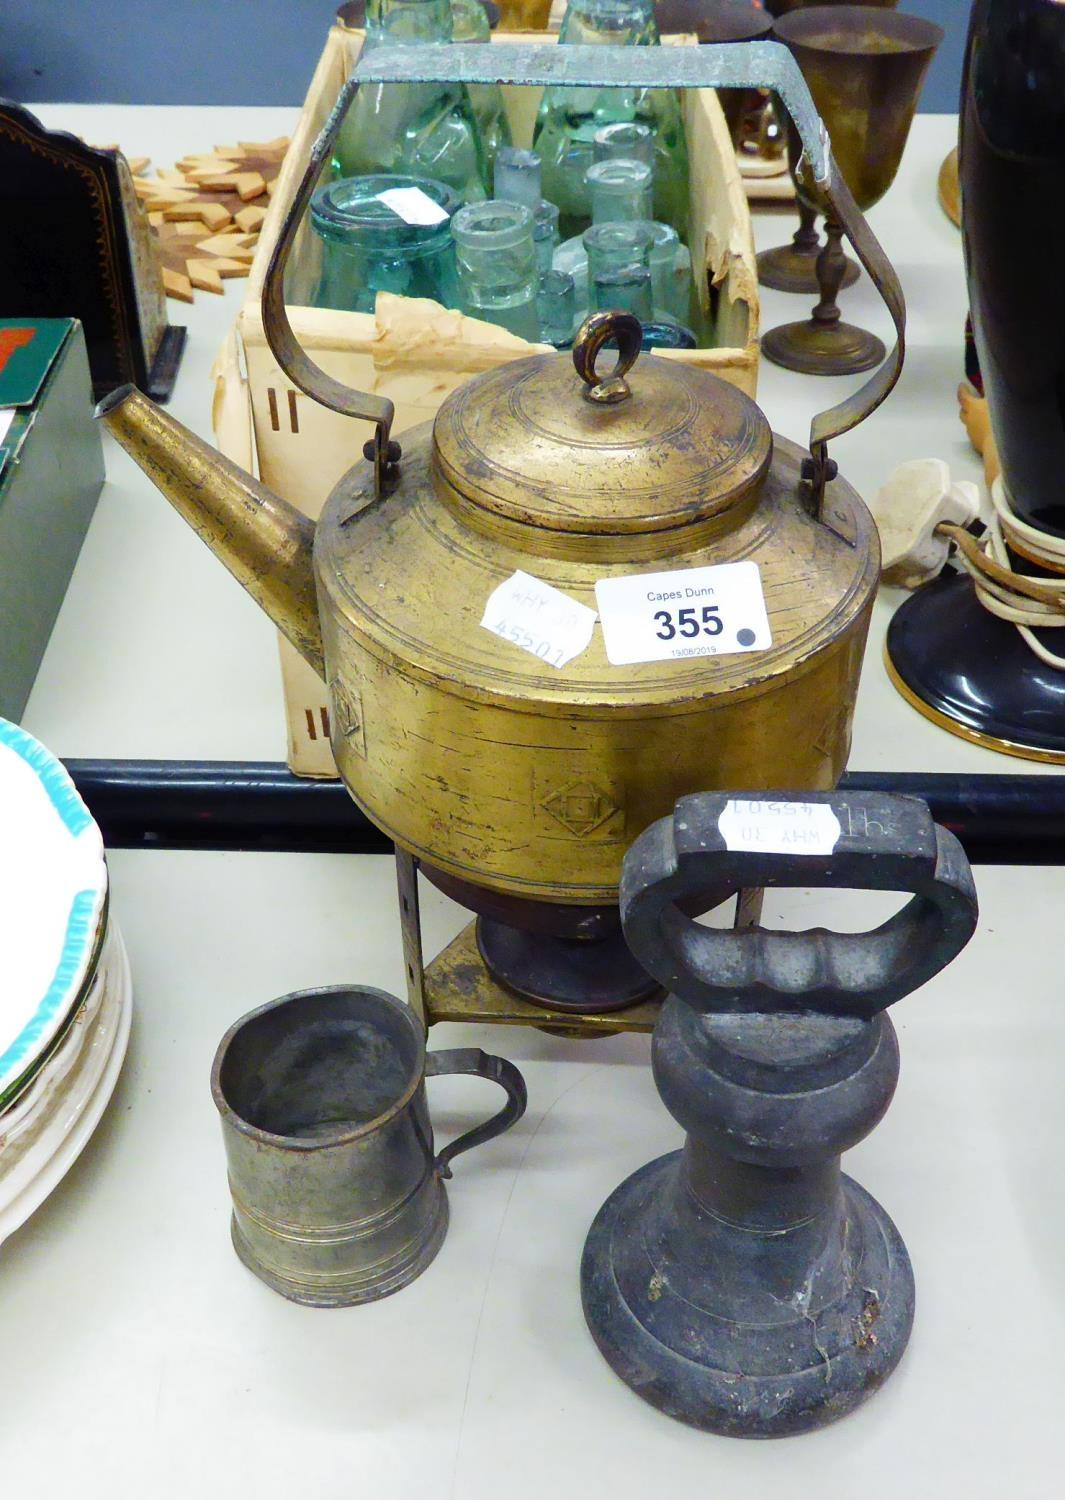 Lot 318 - SESSESSIONIST BRASS TEA KETTLE ON SPIRIT BURNER STAND, A LARGE BELL WEIGHT AND PEWTER MEASURE